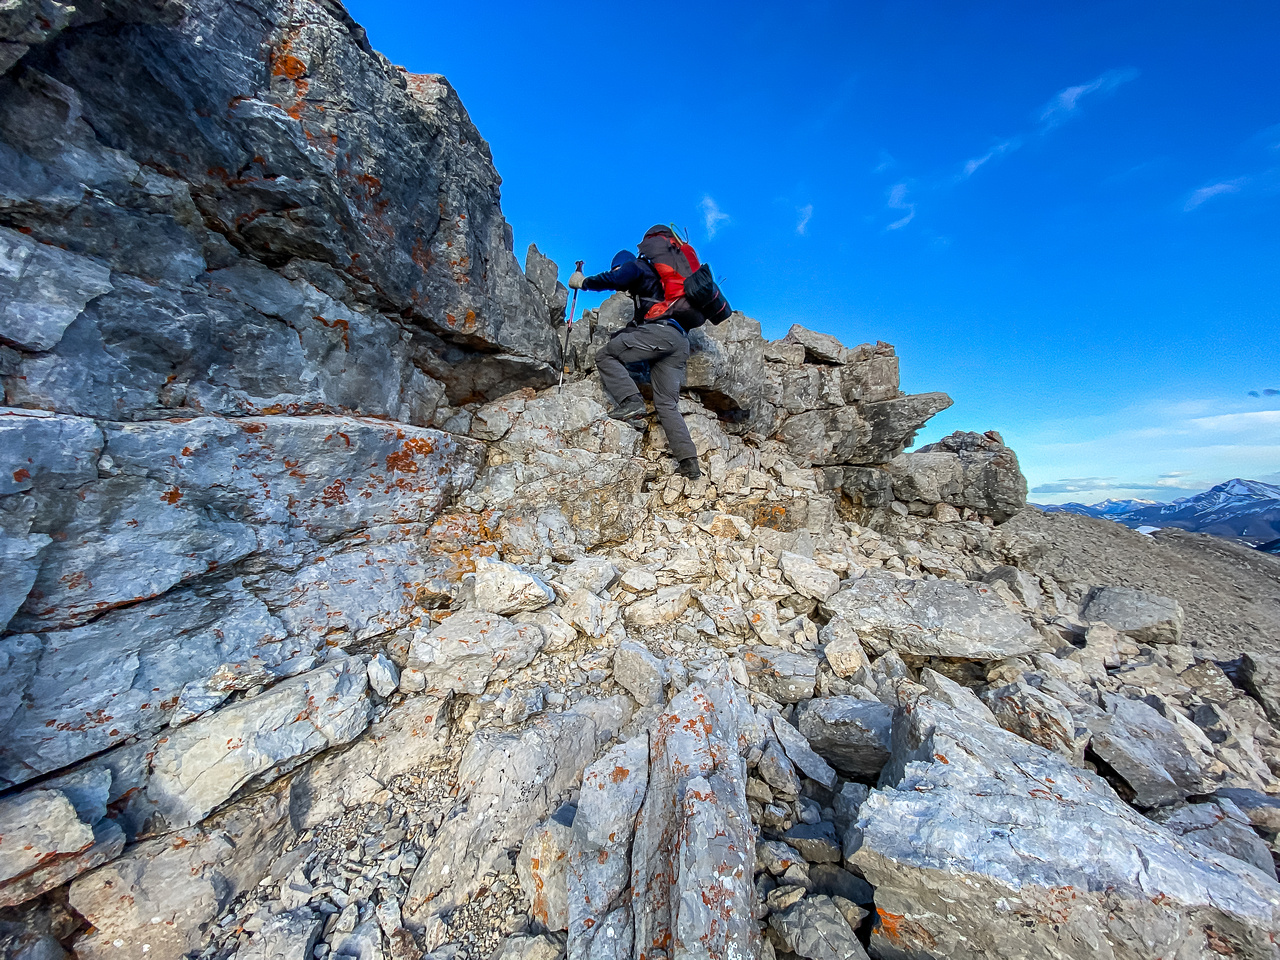 Some easy scrambling to the summit.